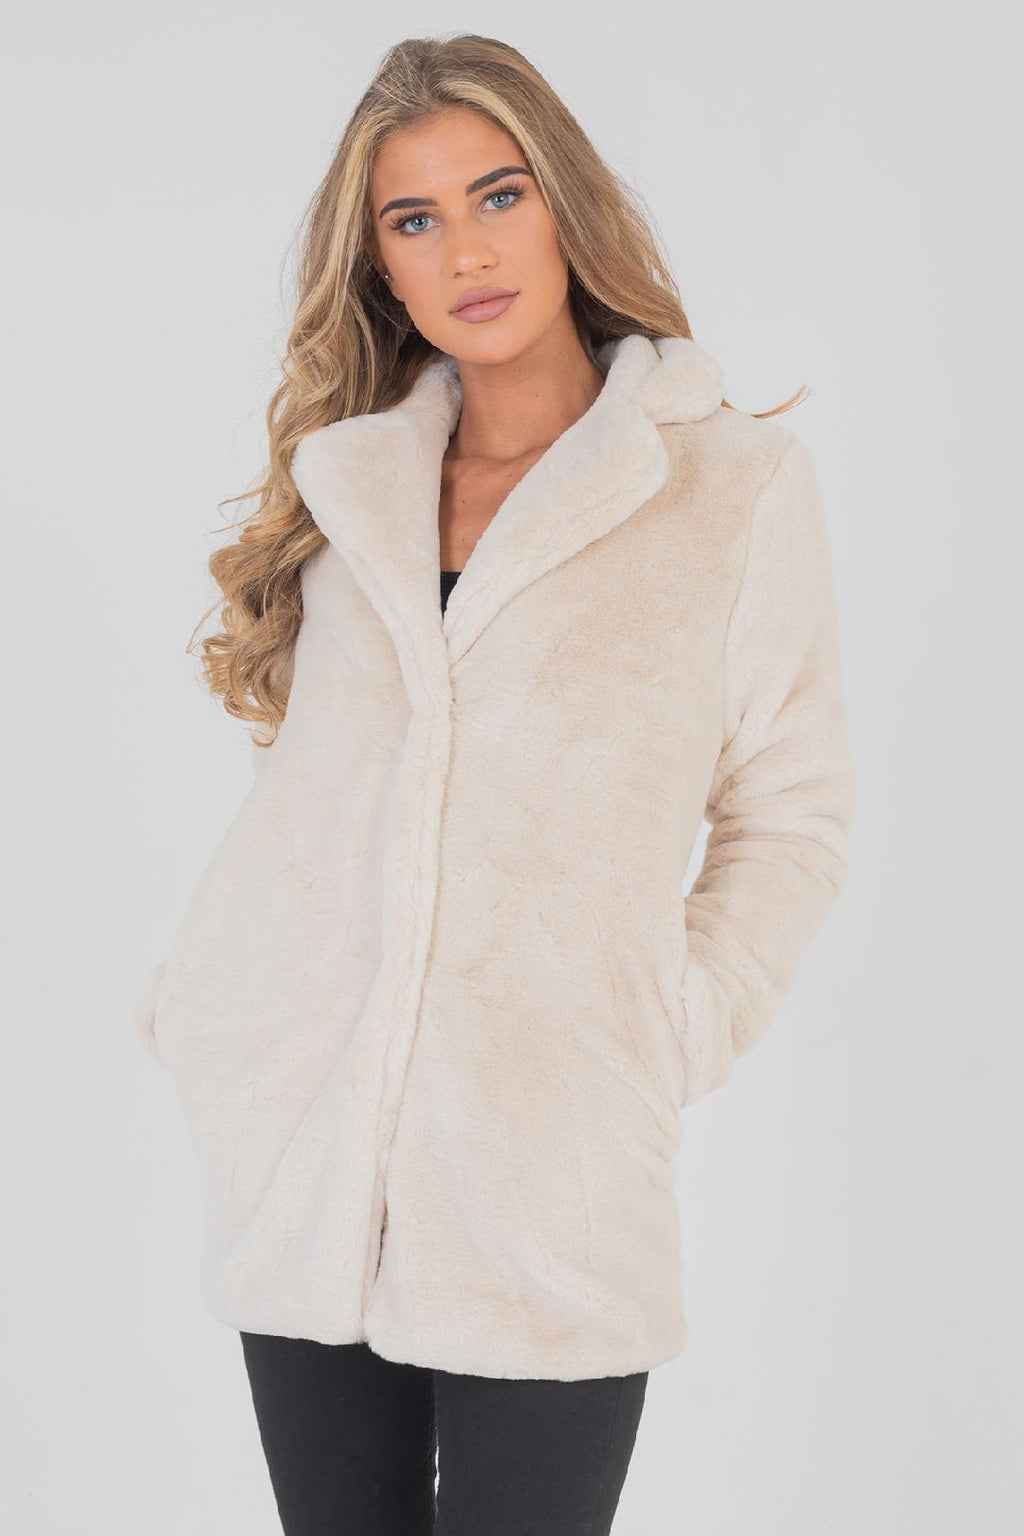 Celine Cream Faux Fur Coat